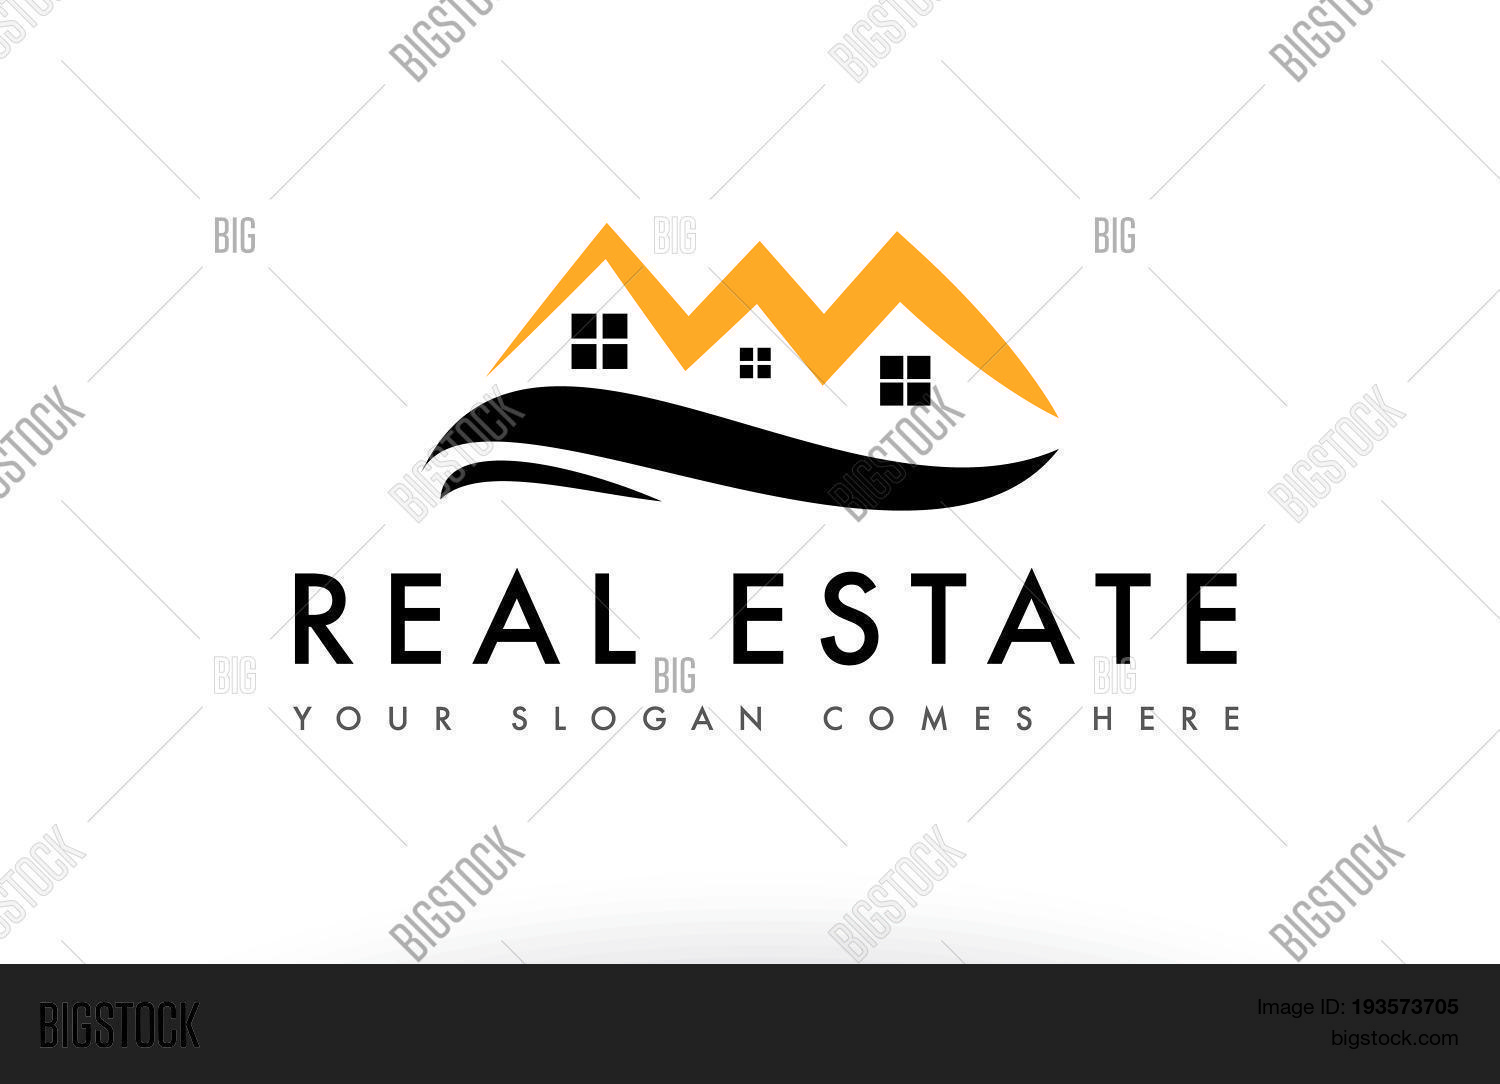 Real Estate House Vector Photo Free Trial Bigstock